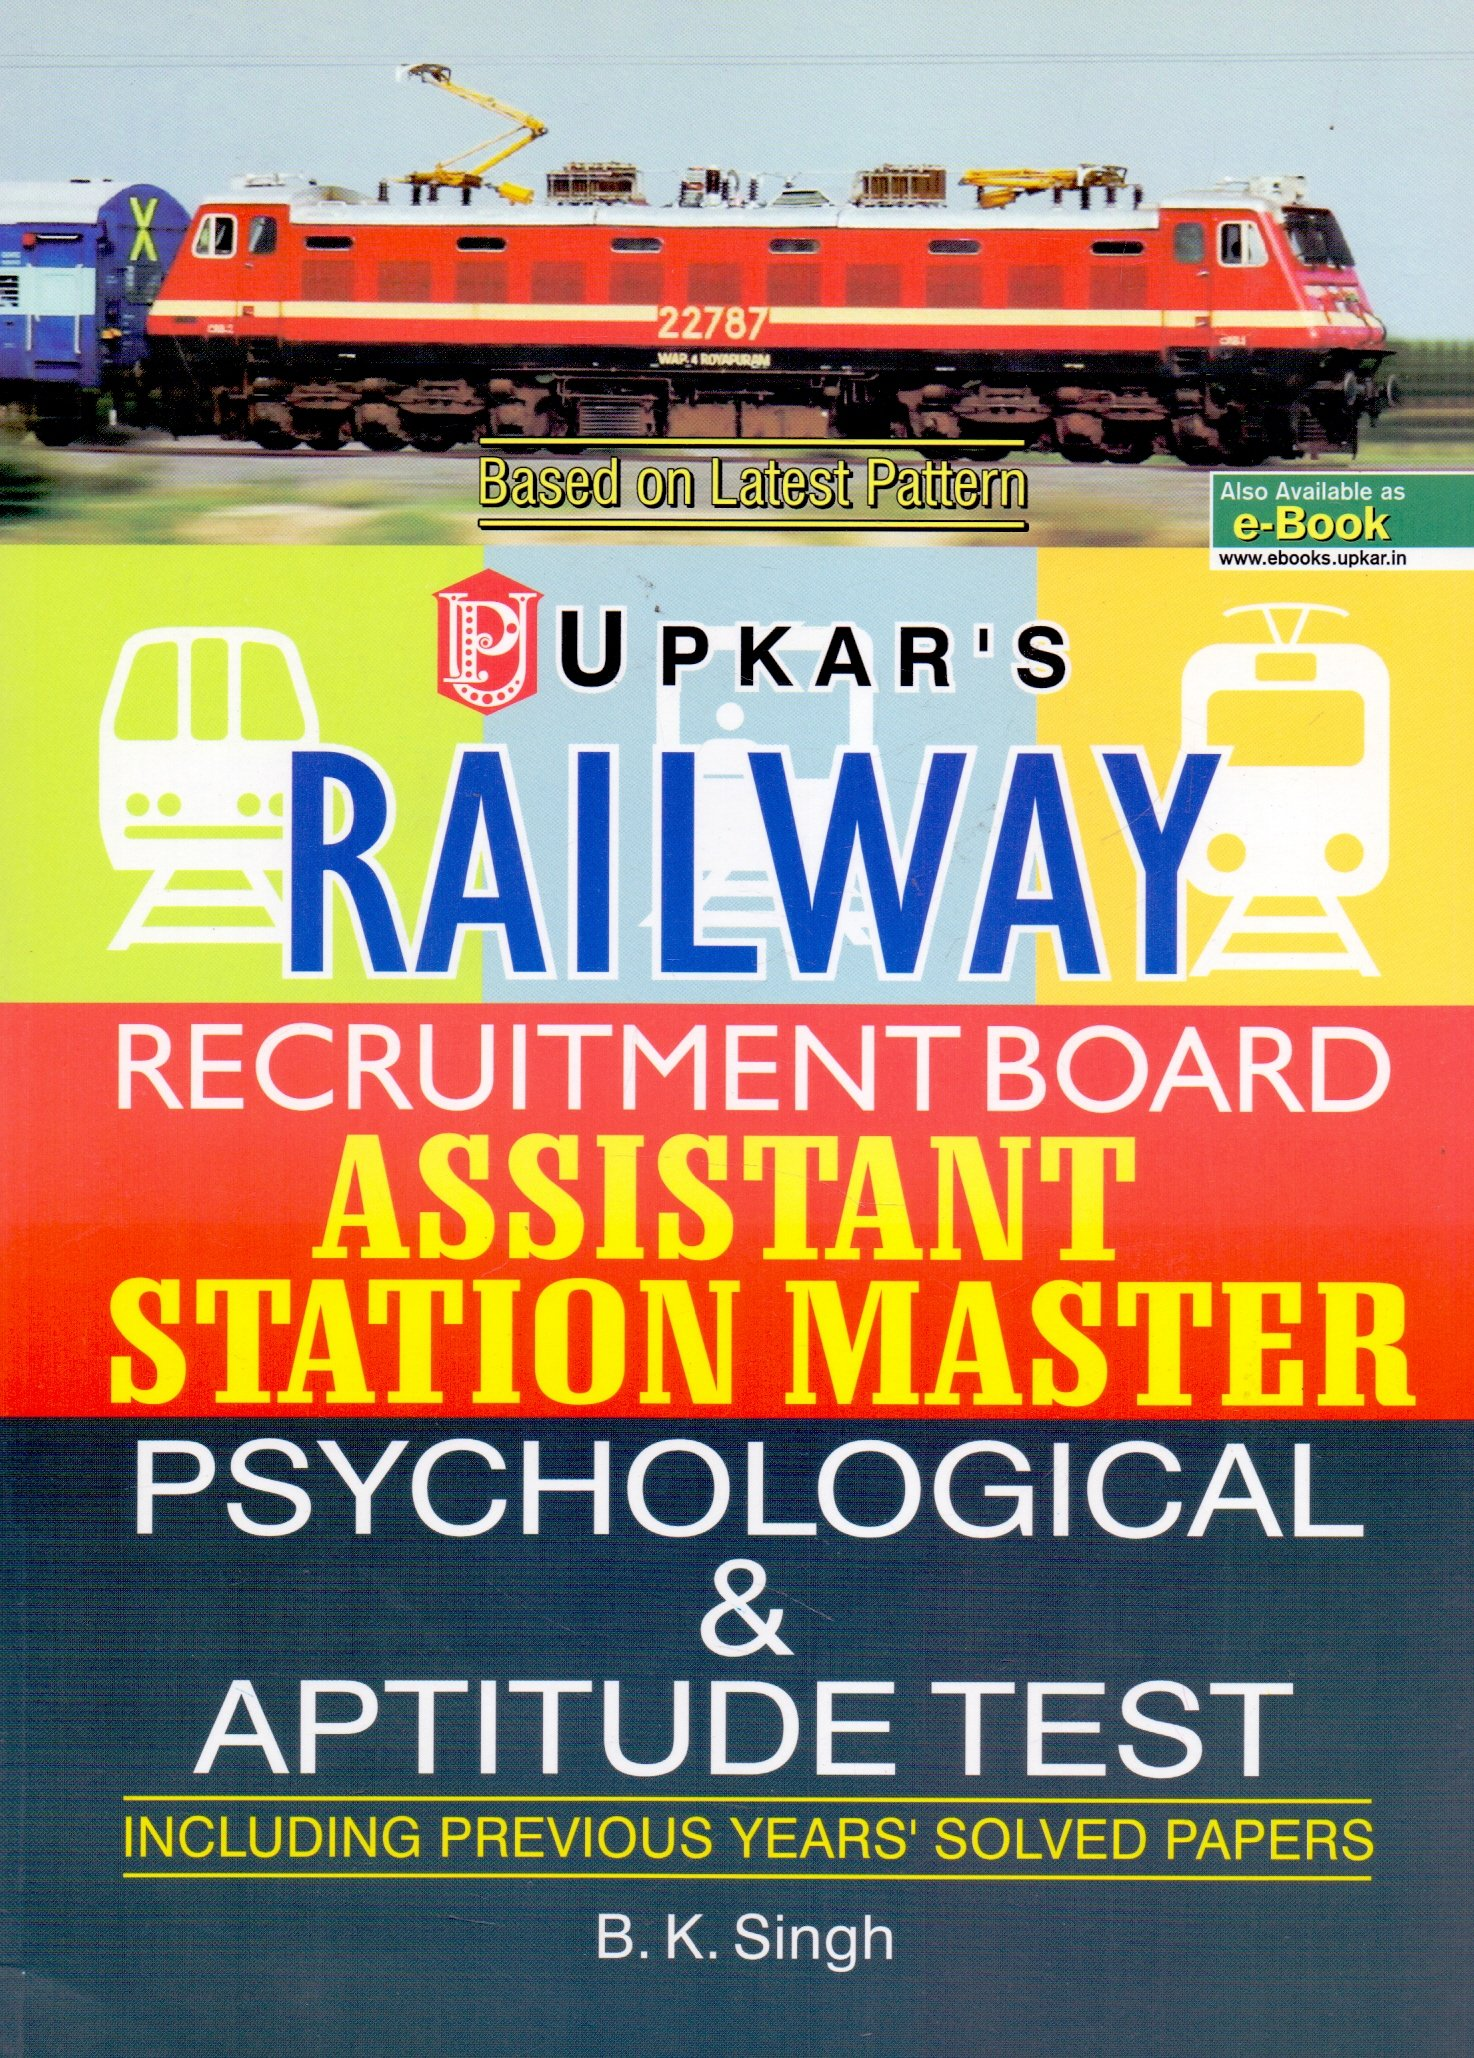 Amazon buy railway recruitment board assistant station master amazon buy railway recruitment board assistant station master psychological and aptitude test book online at low prices in india railway recruitment fandeluxe Gallery